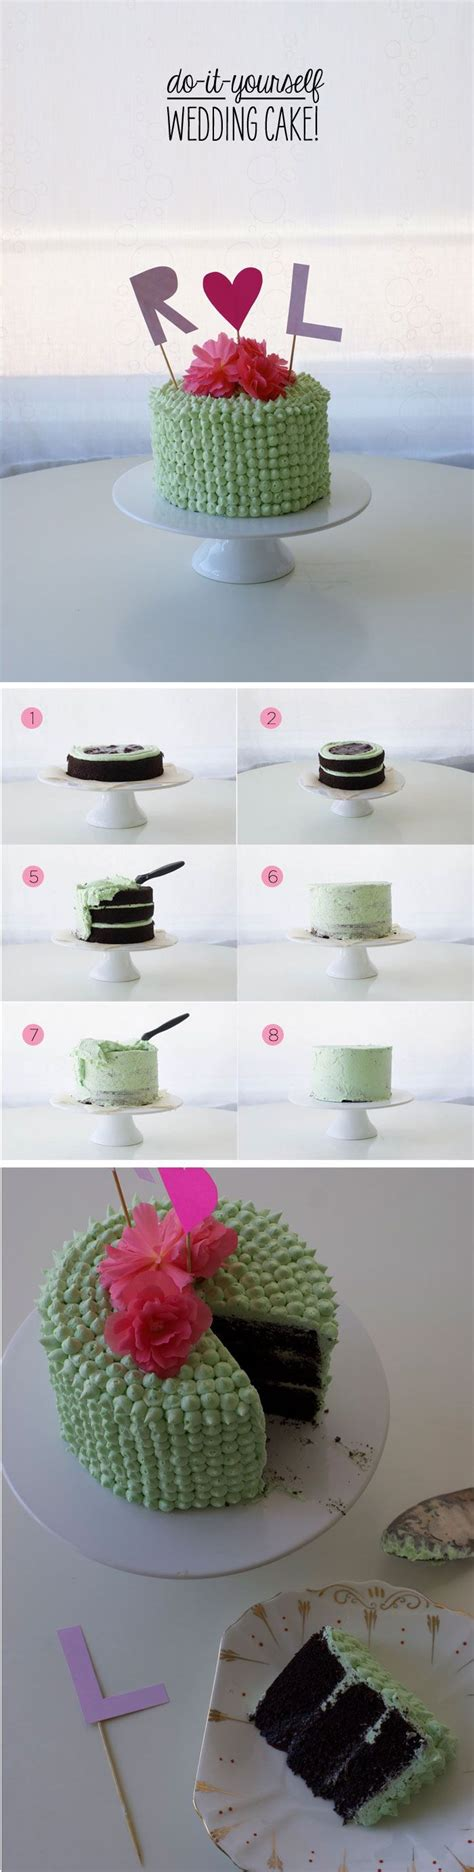 do it yourself wedding cake make your best friends or